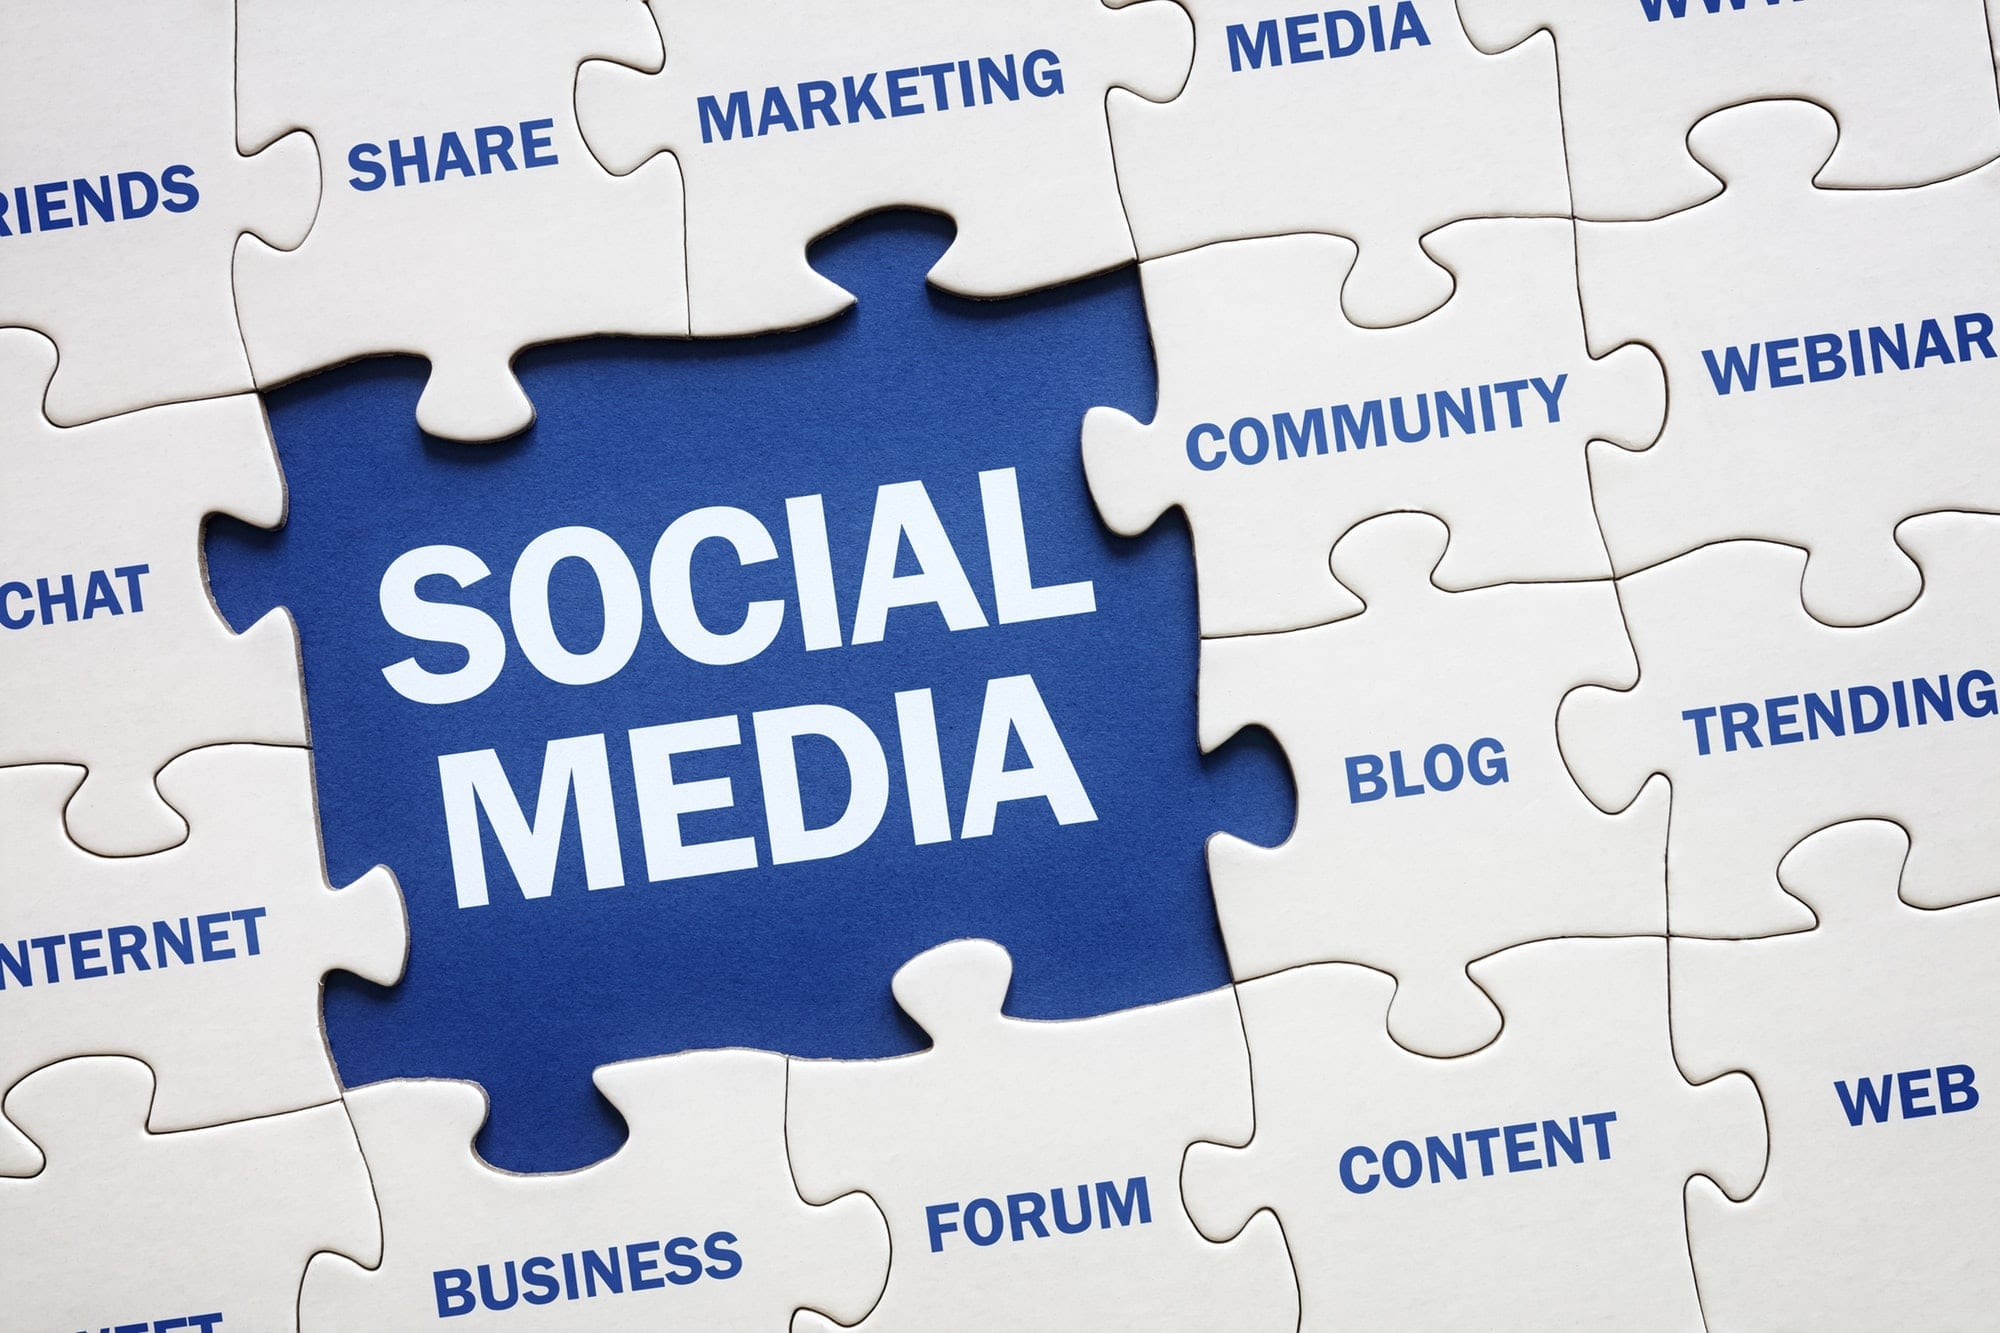 Social Media Marketing: Using Internet, Yellow Pages & Keywords